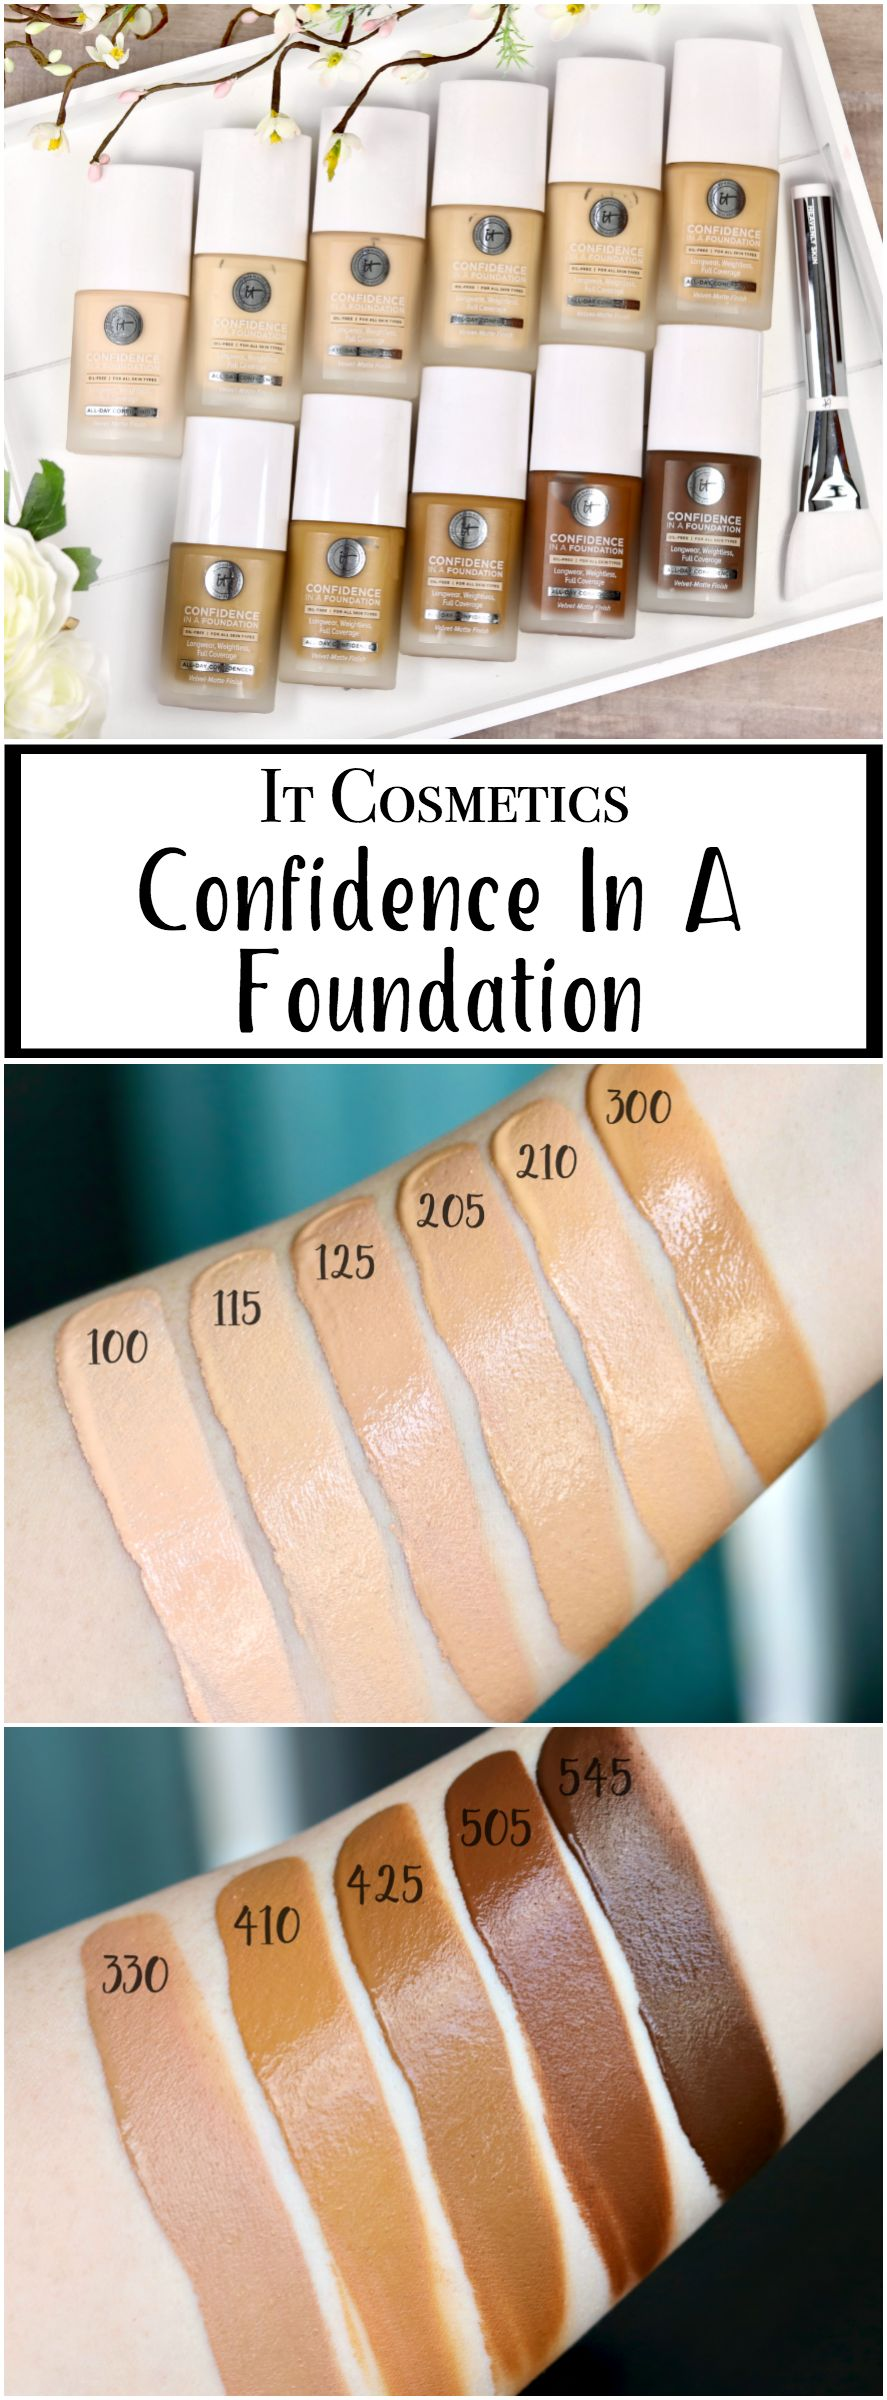 Review of the new It Cosmetics Confidence In A Foundation. 11 Shades Swatched!